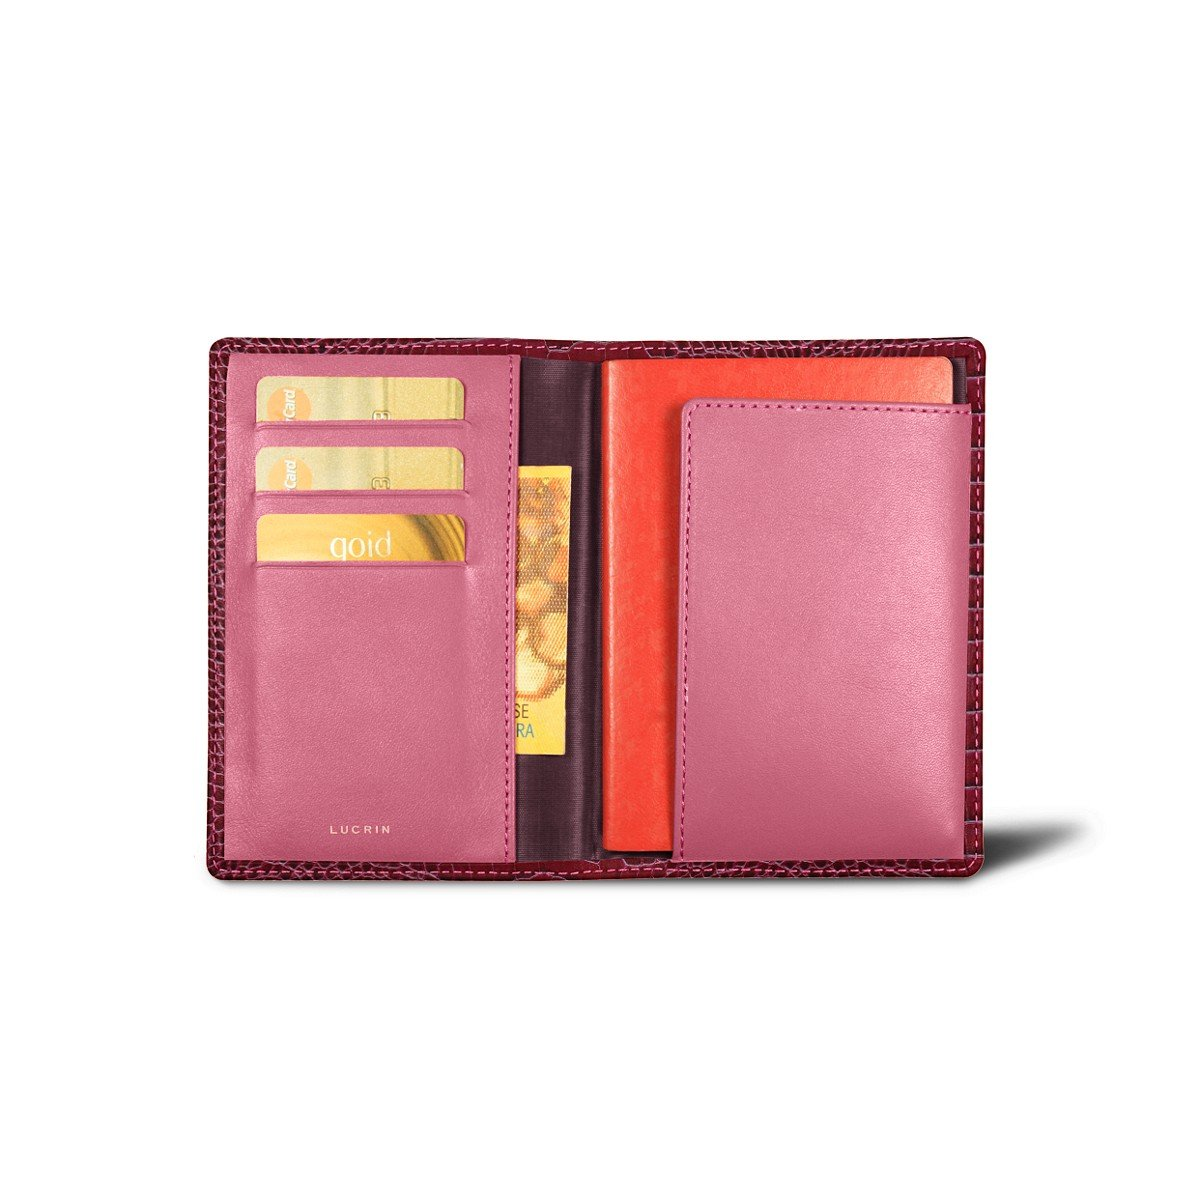 Lucrin - Passport and Loyalty Card Holder - Fuchsia - Crocodile style calfskin